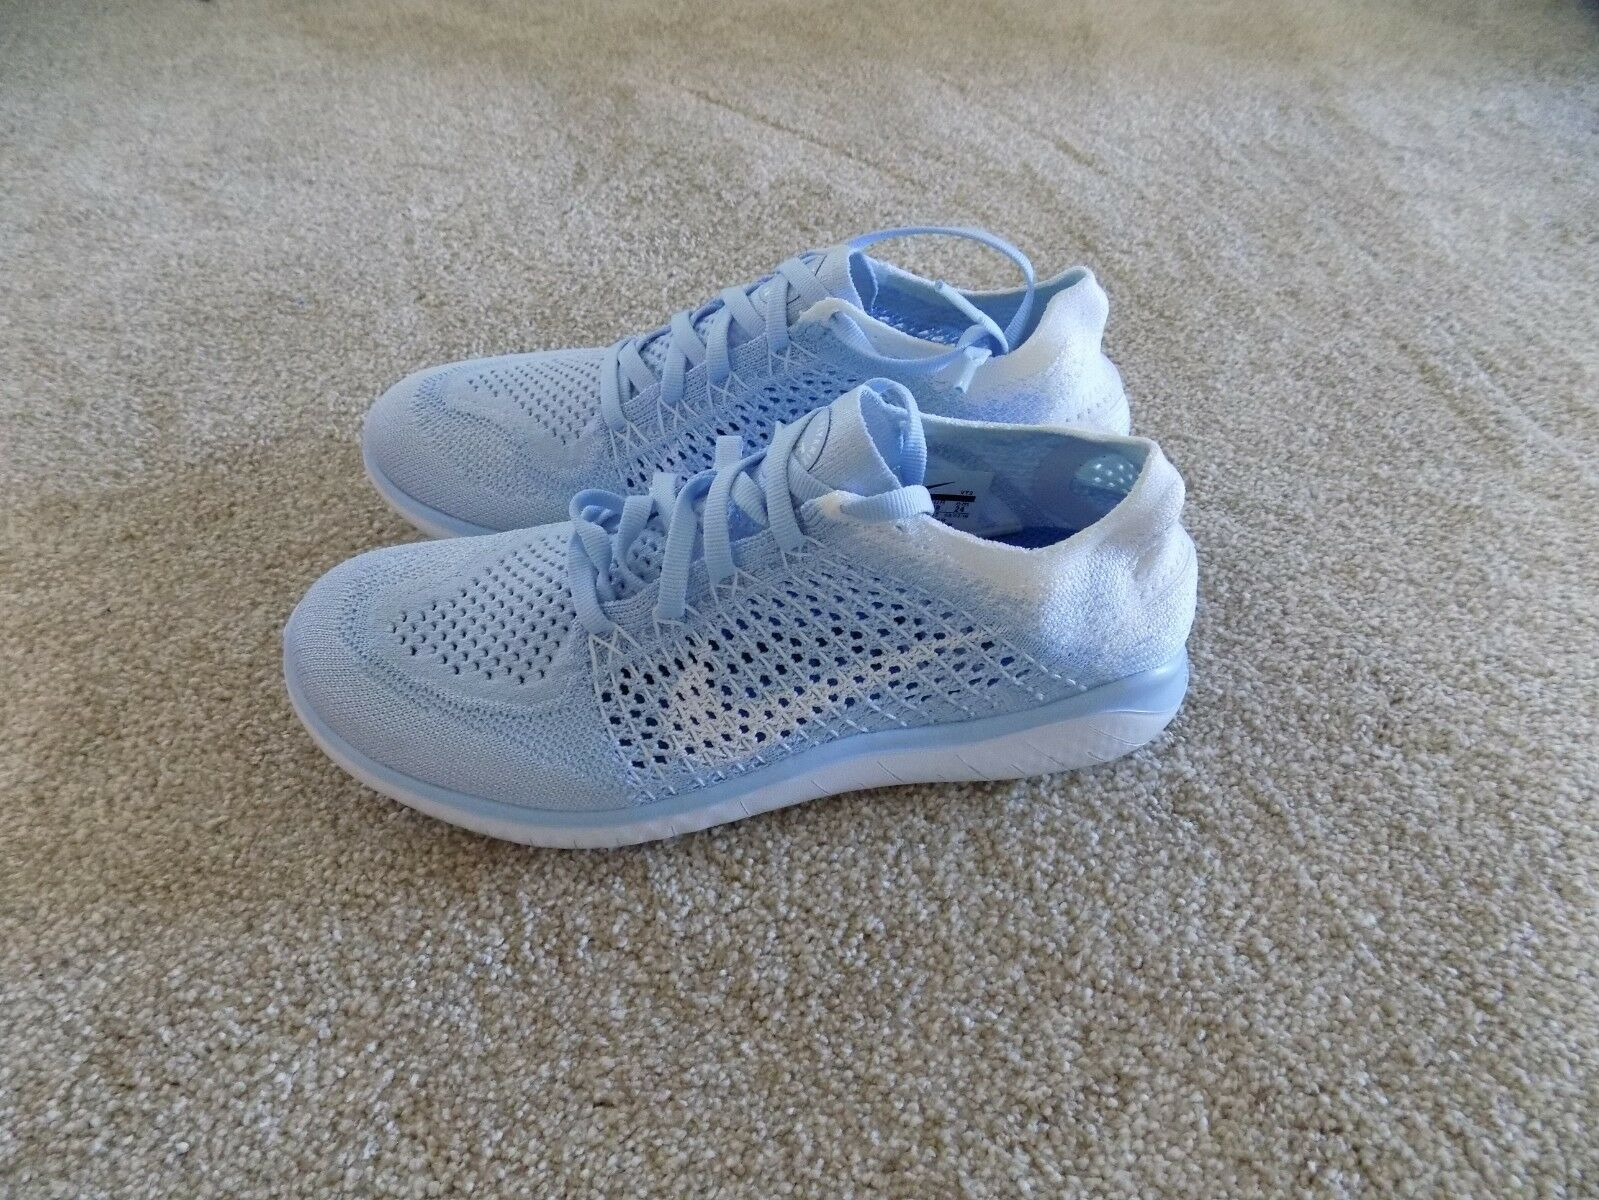 NEW WOMENS 7 8 8.5 9 NIKE FREE RN FLYKNIT 2018 RUNNING SHOES WHITE blueE 942839